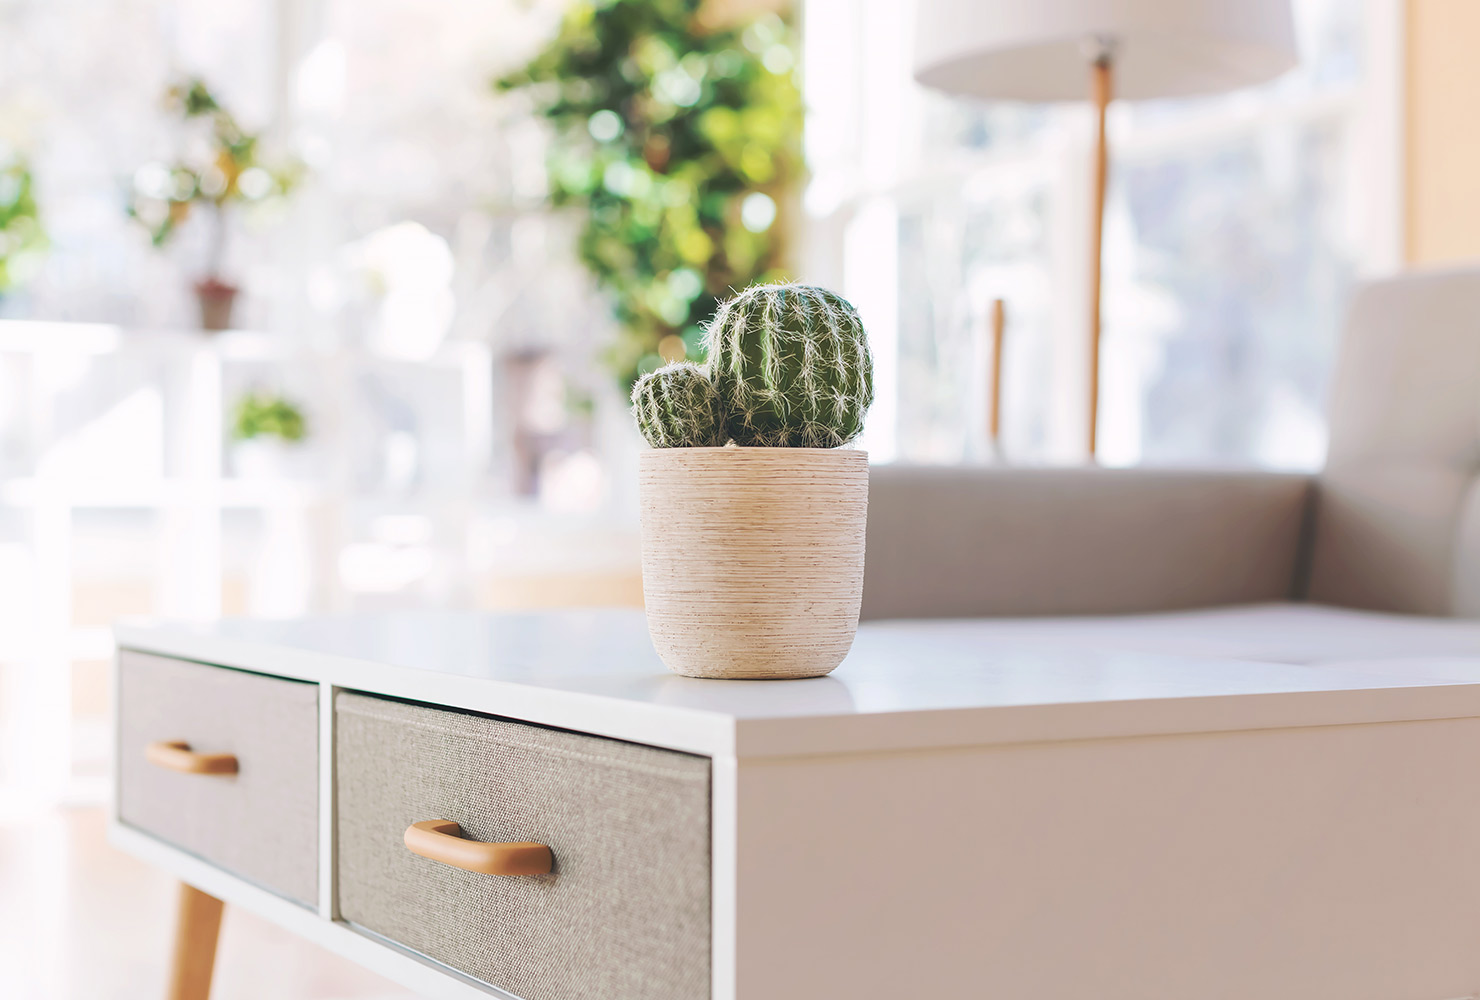 White coffee table with cactus plant.